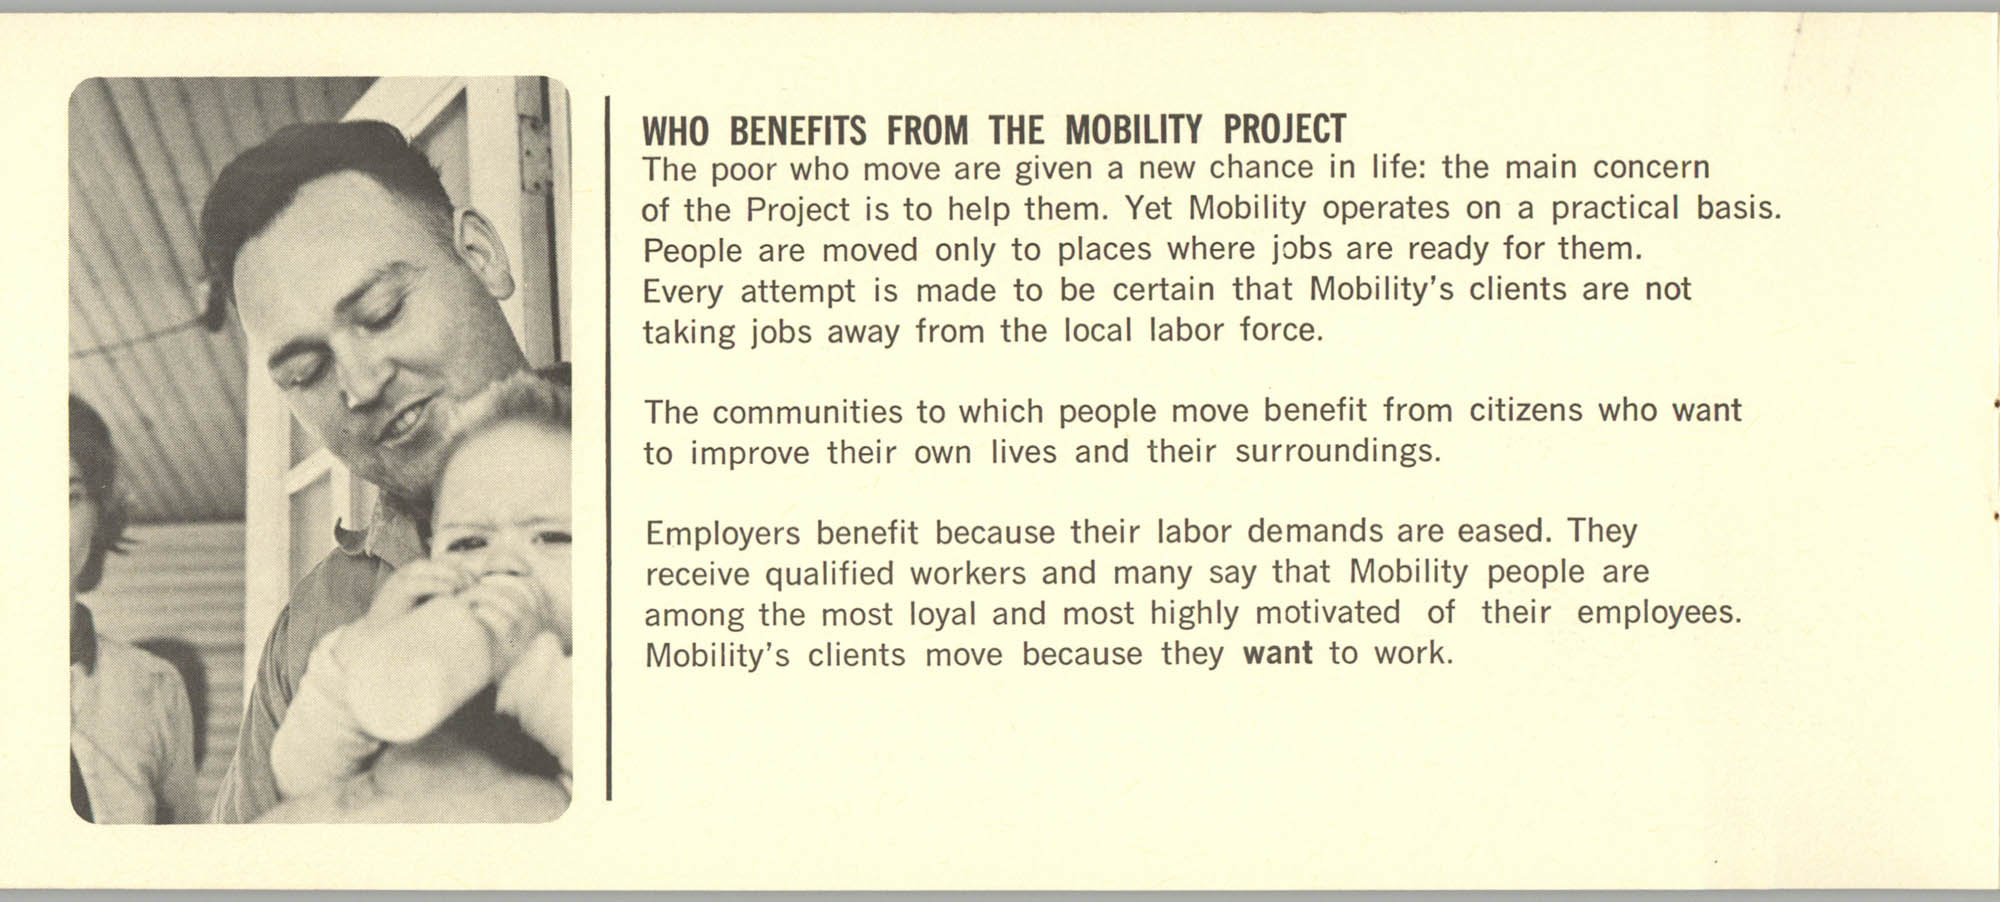 The Mobility Project, Page 5